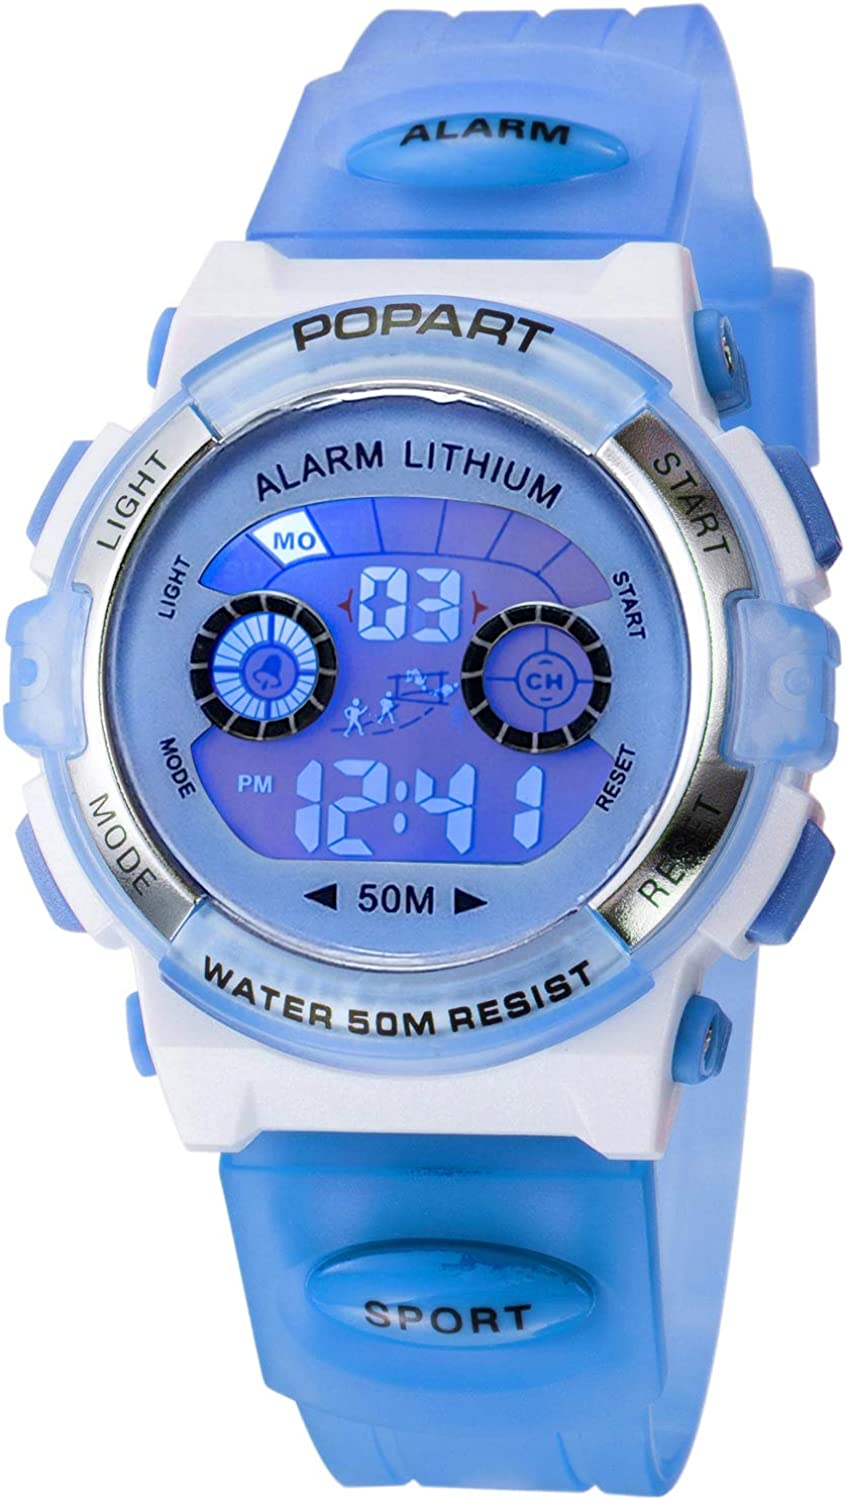 Kid Watch LED Sport 30M Waterproof Multi Function Digital Wristwatch for Boy Girl Children Gift